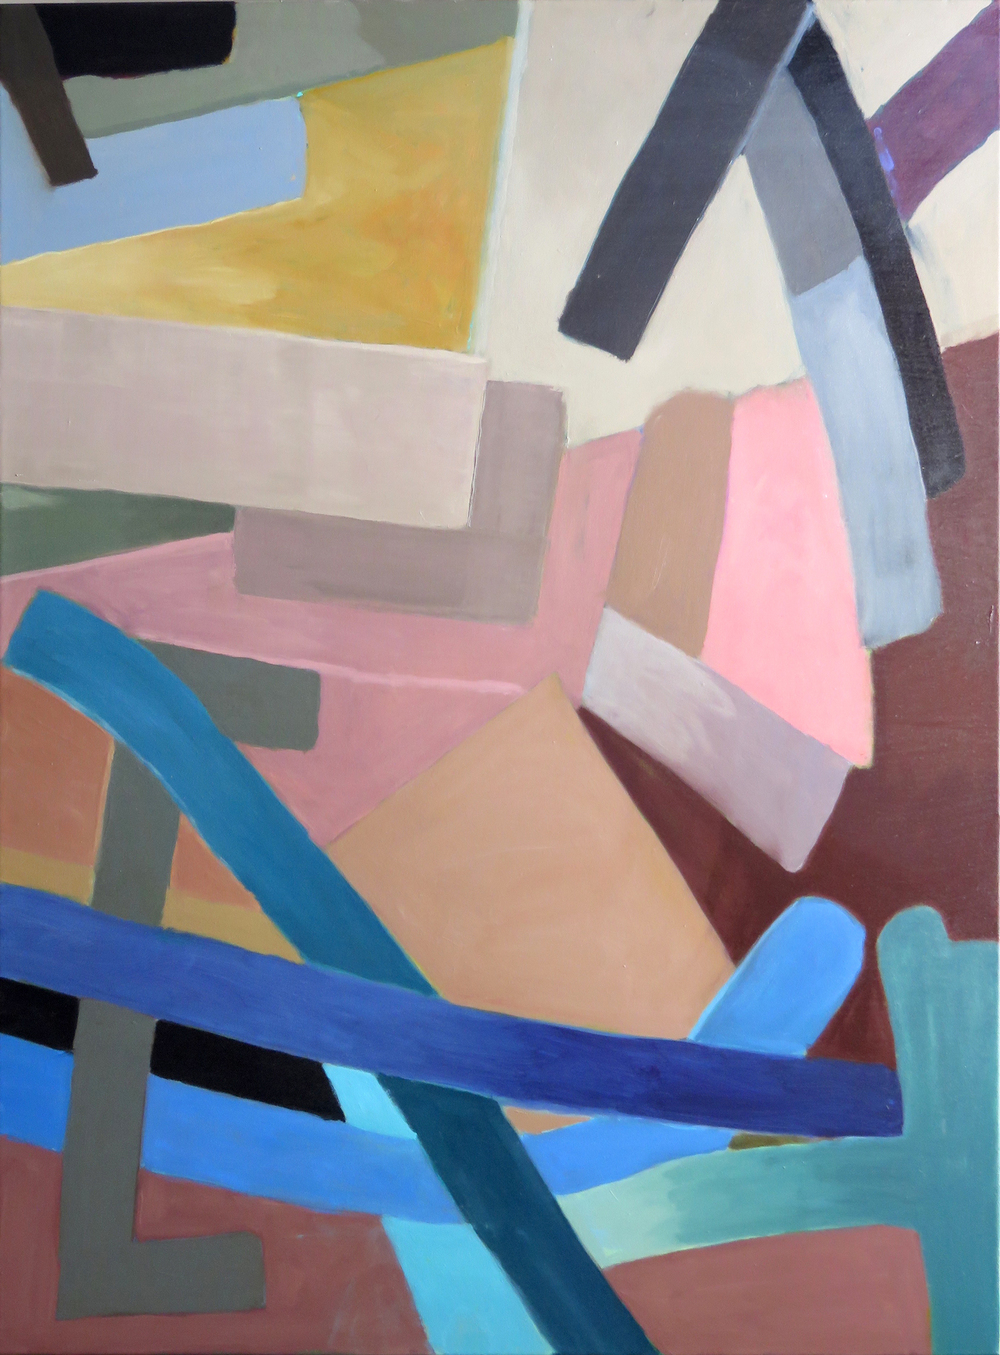 Roundabout, 2016 Oil on canvas, 40 x 30 inches